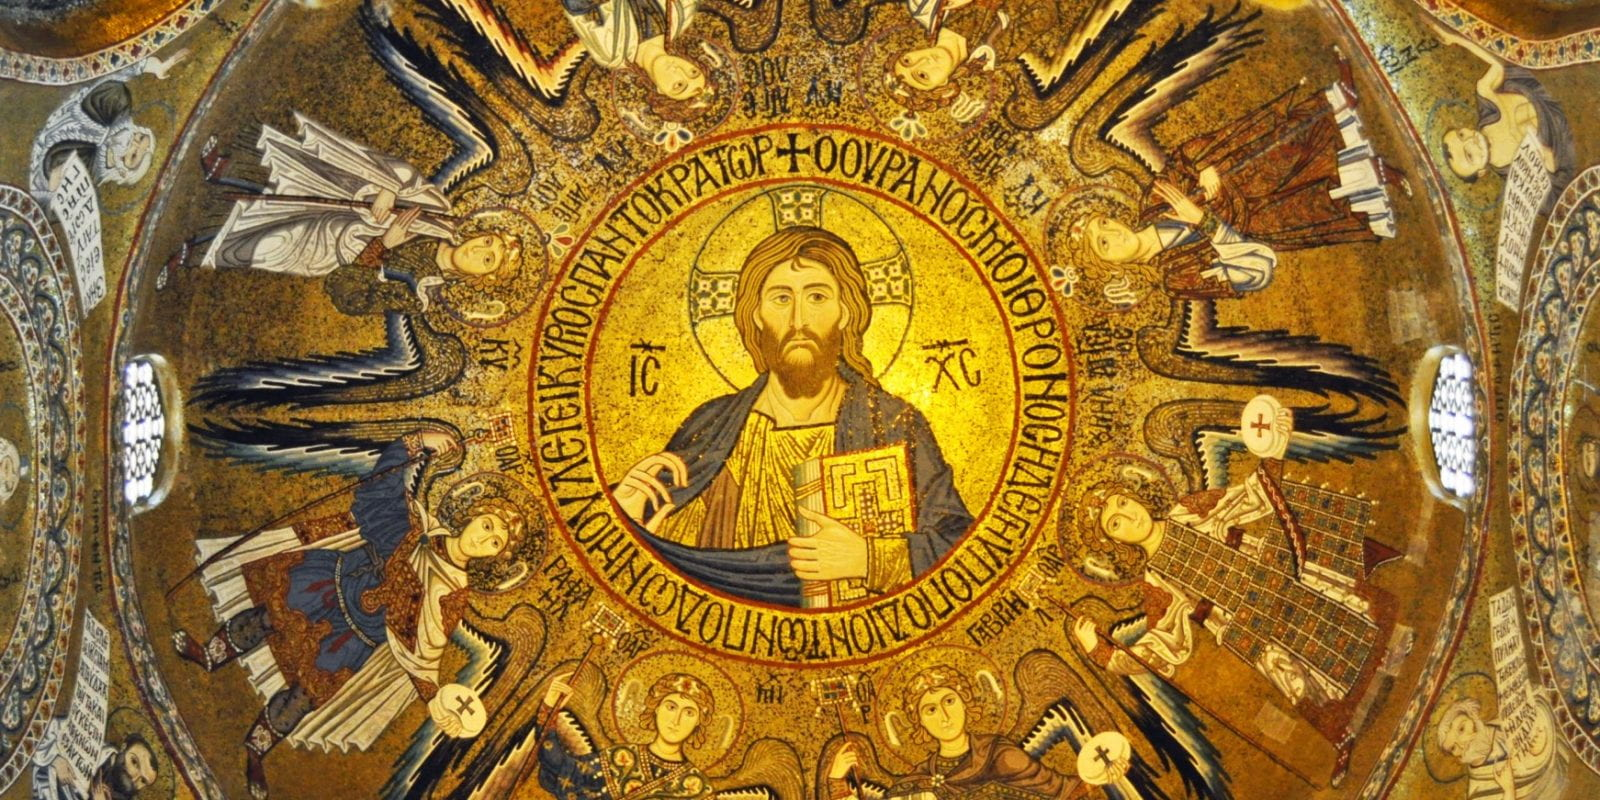 Pantocrator in the dome of the Palatine Chapel, Palermo